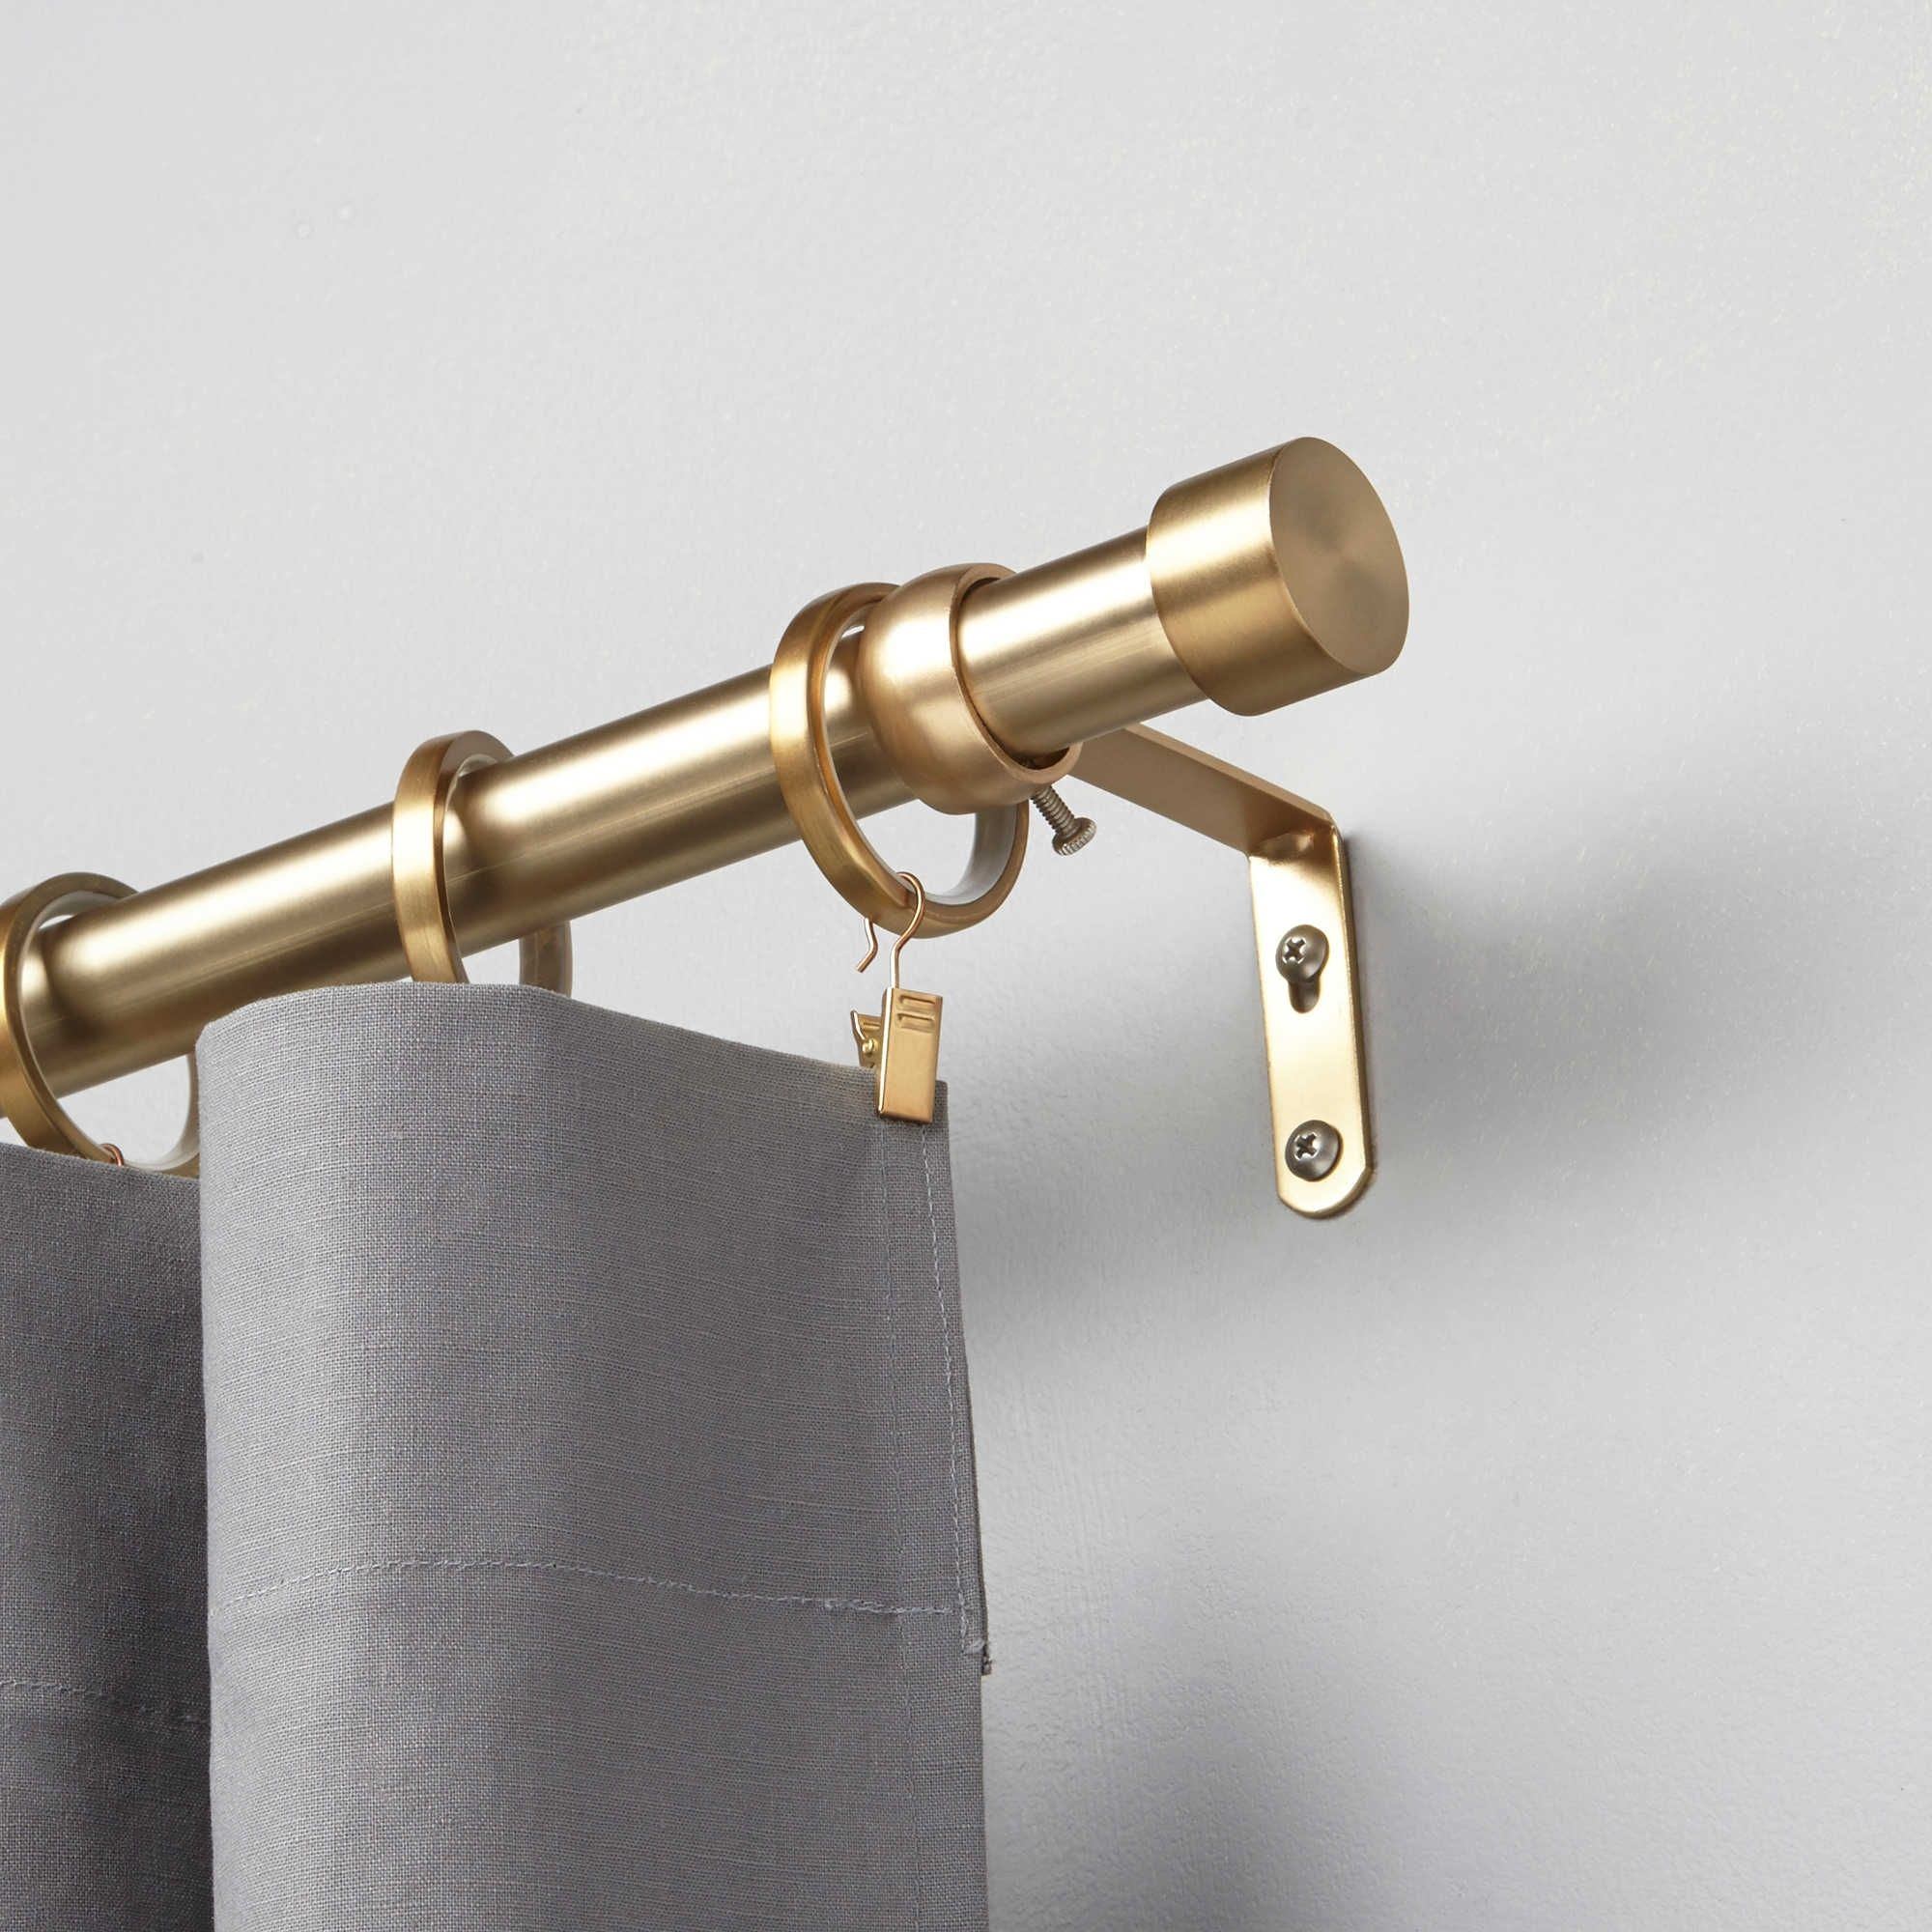 Curtains Double Curtain Rods Lowes In Brass Finish For Home For